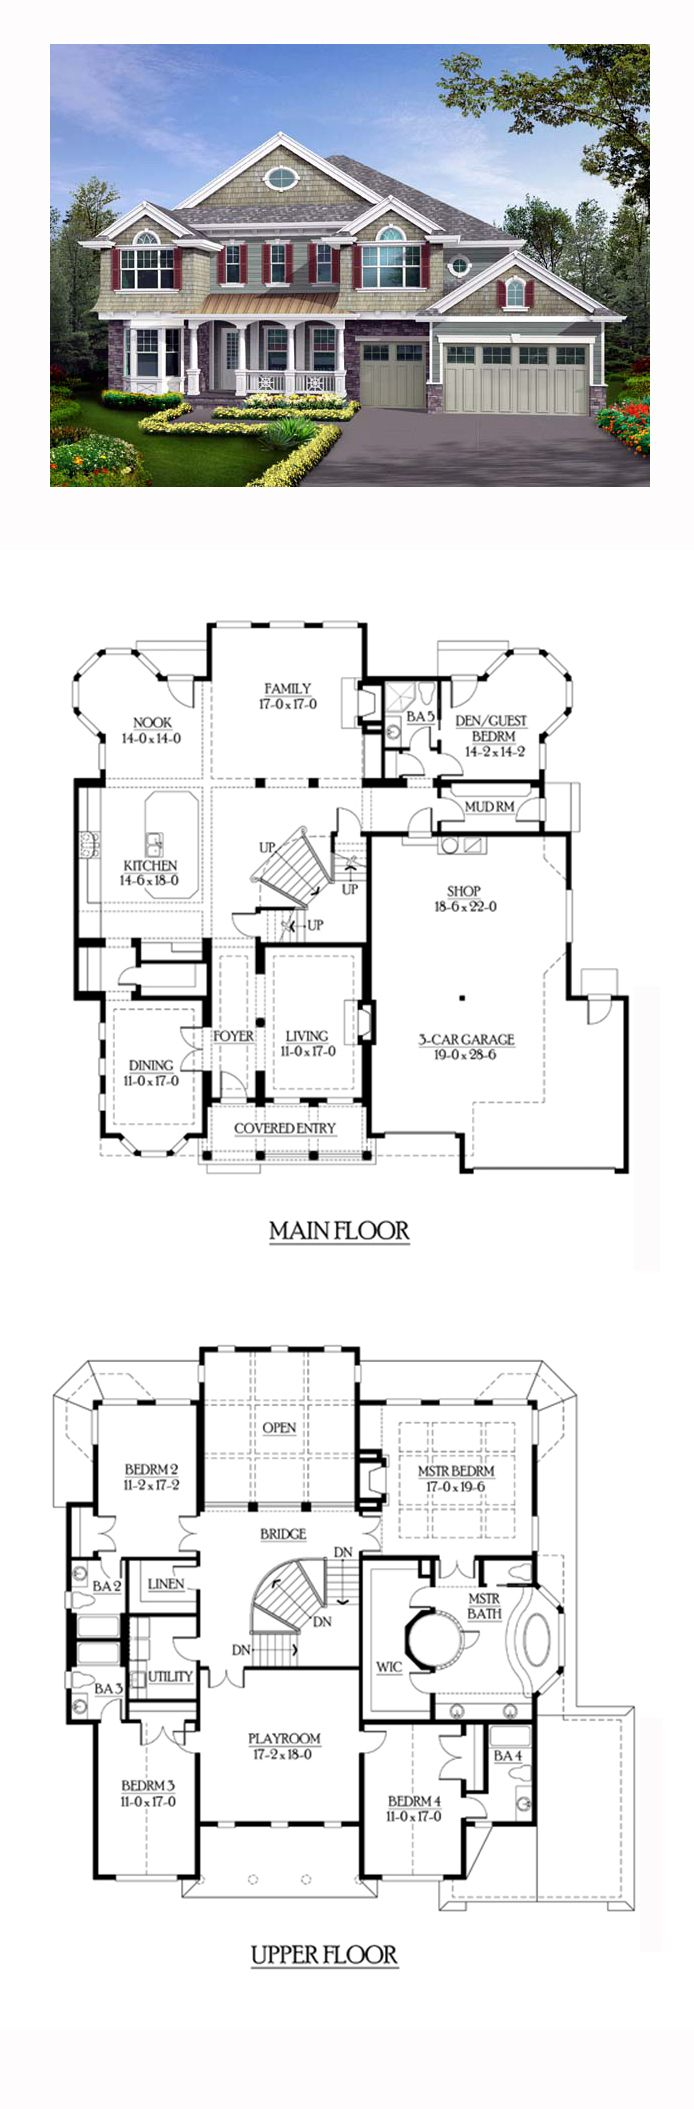 shingle style cool house plan id chp 39375 total living area 4373 - Cool House Floor Plans